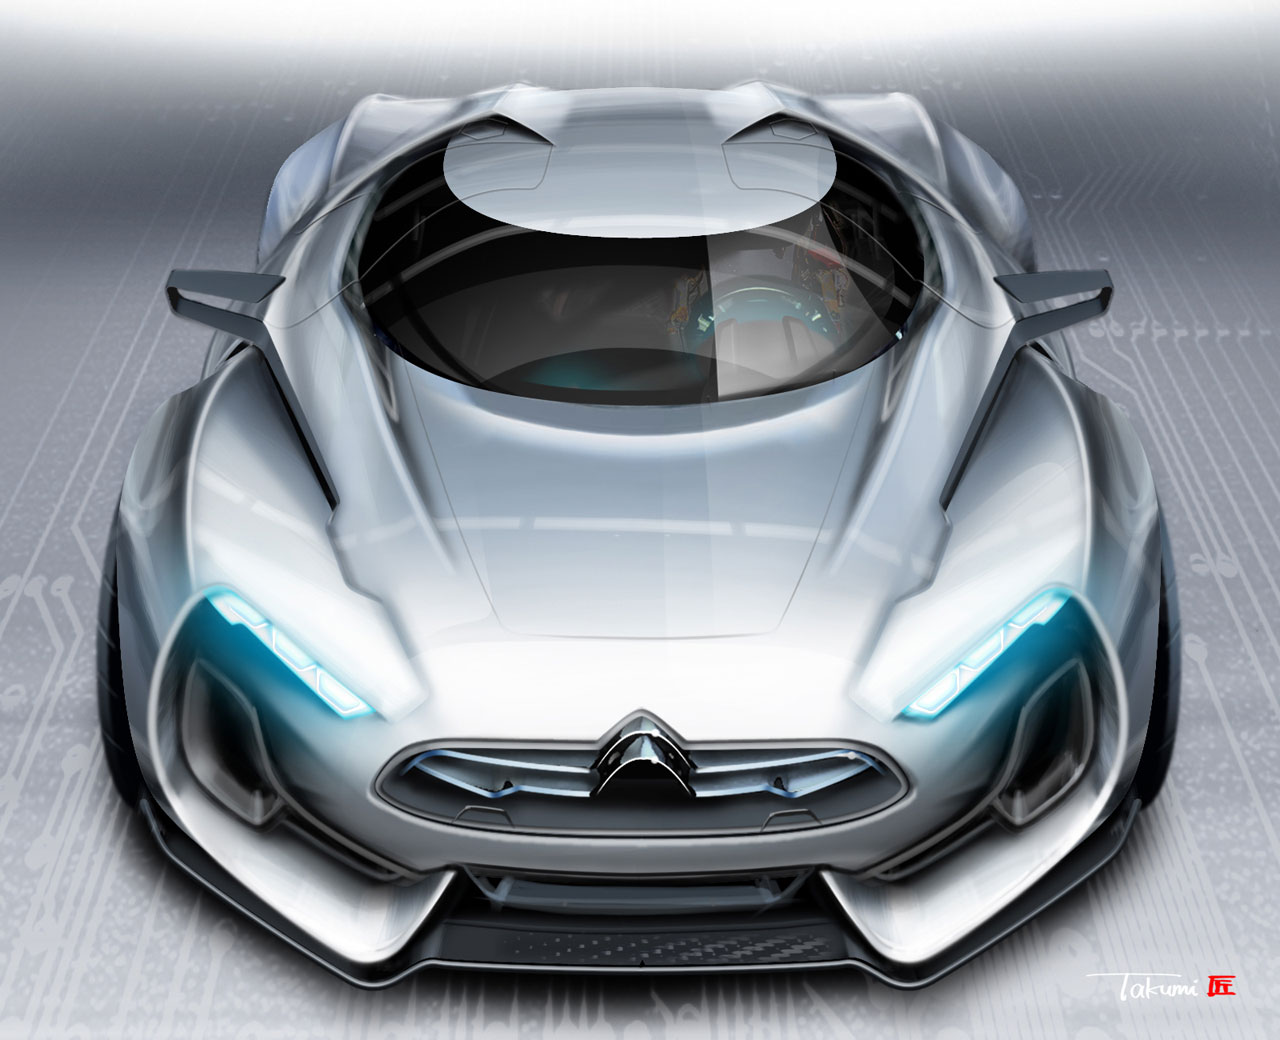 CITROEN HD Car Wallpapers For Windows 7